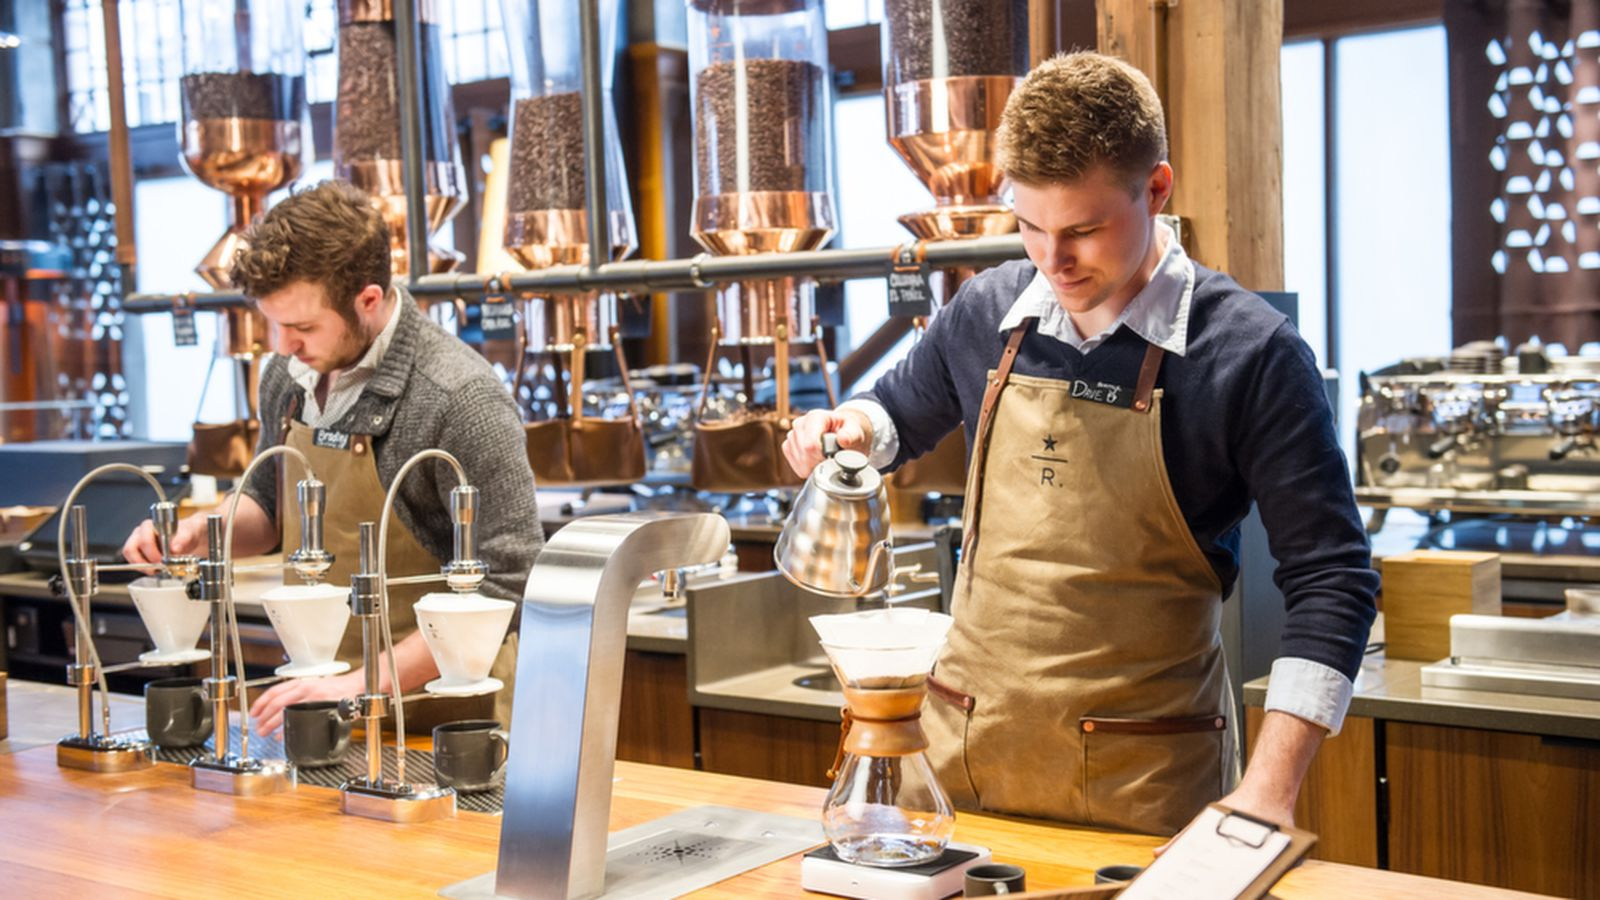 Starbucks Hopes to Win Over Coffee Snobs With More Fancy